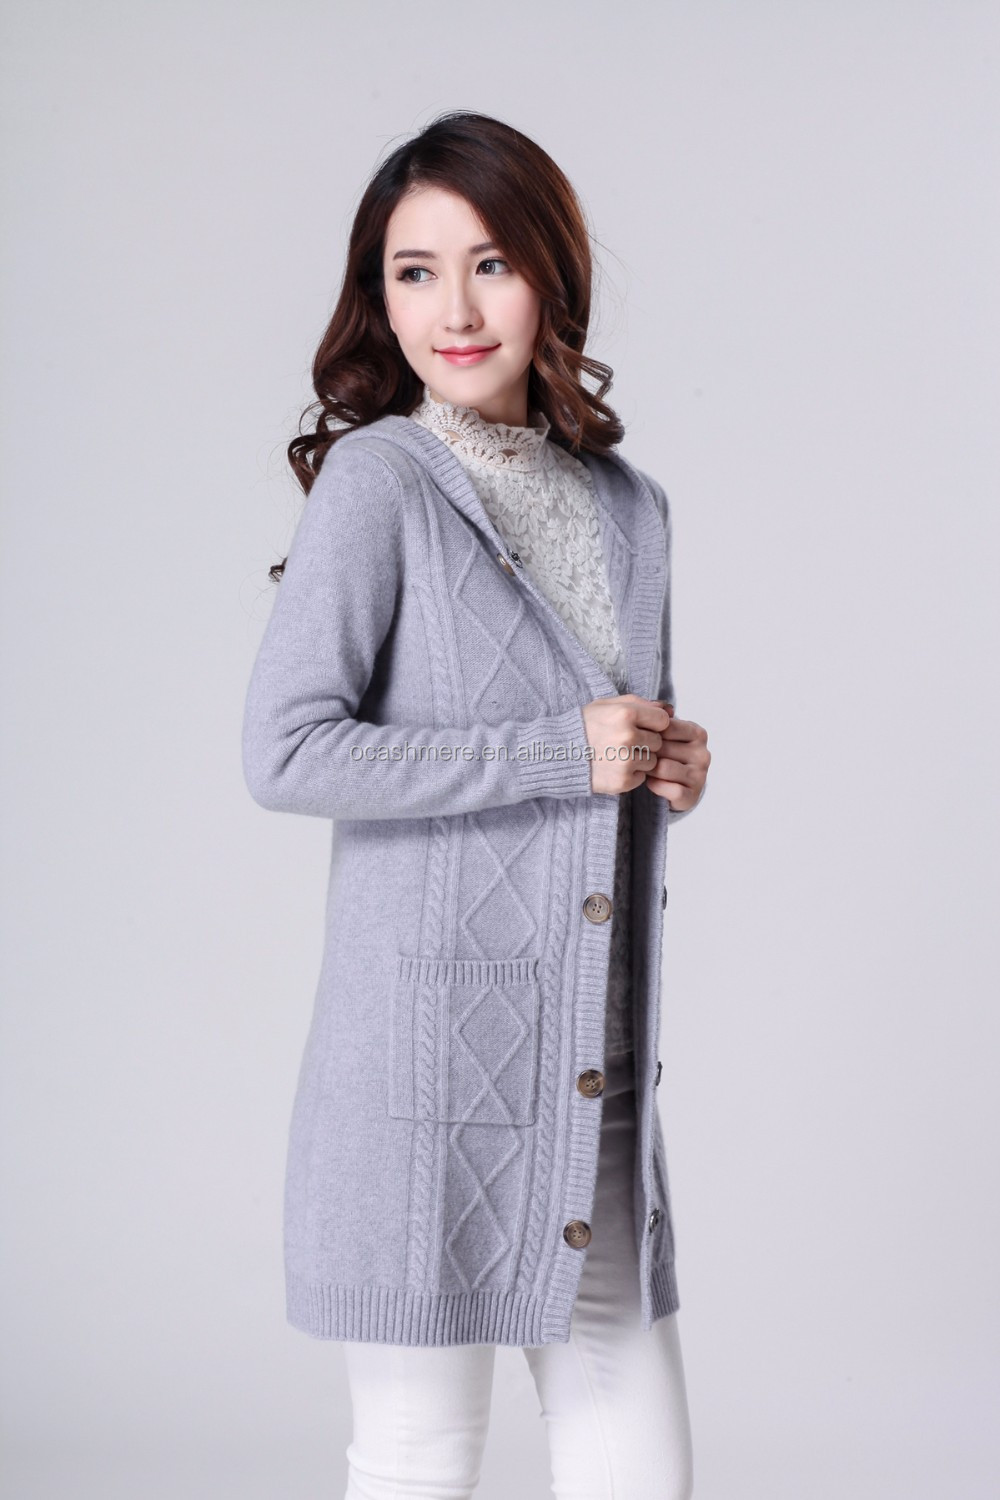 Inner Mongolia Ordos Raw Cashmere,Women's 100% Cashmere Hoodie Long Cardigan Sweater